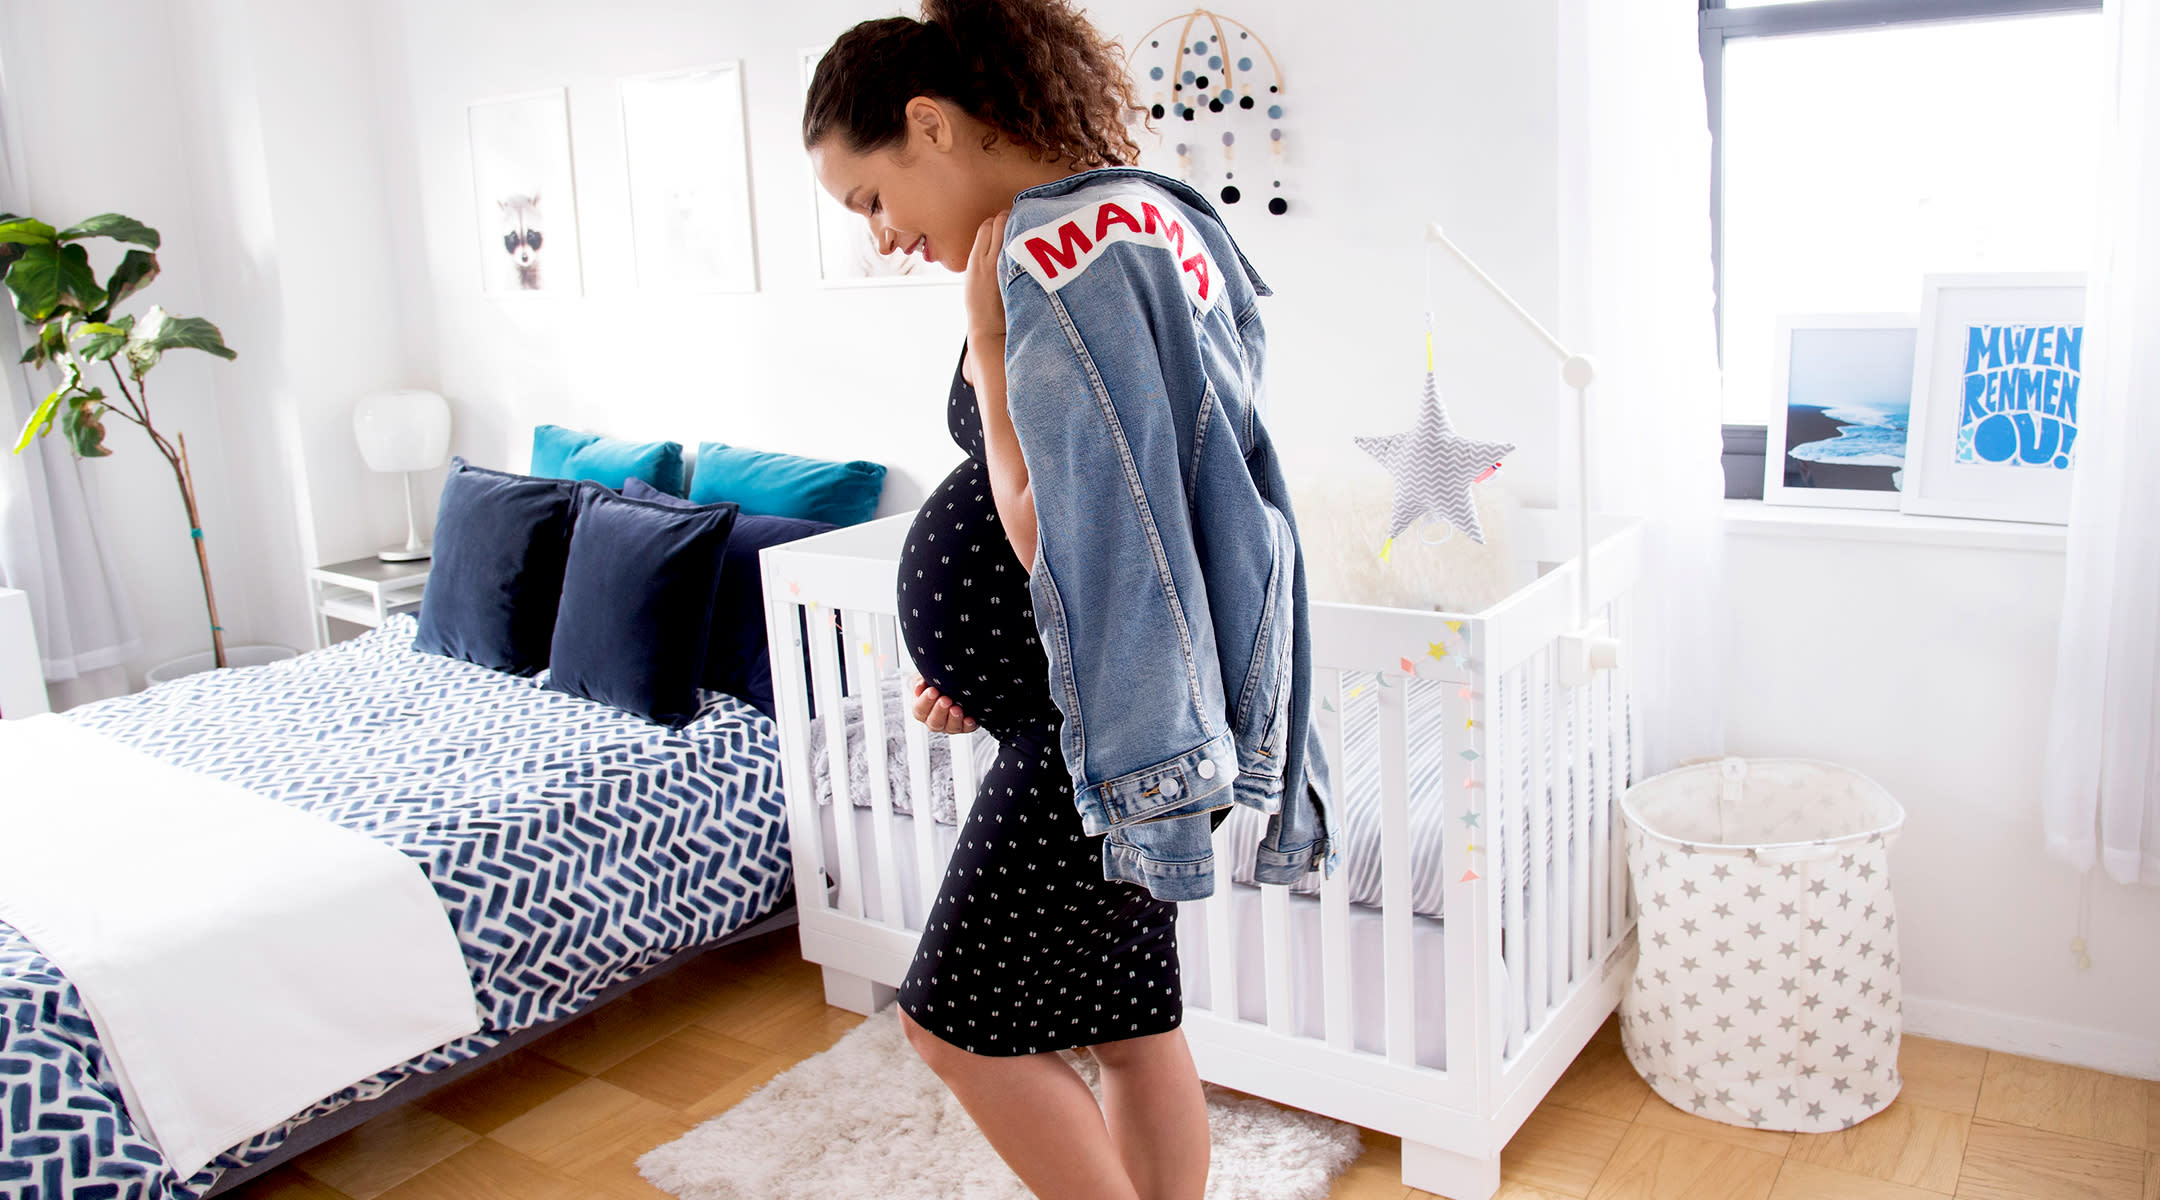 erin williams shares her struggle with body image and pregnancy